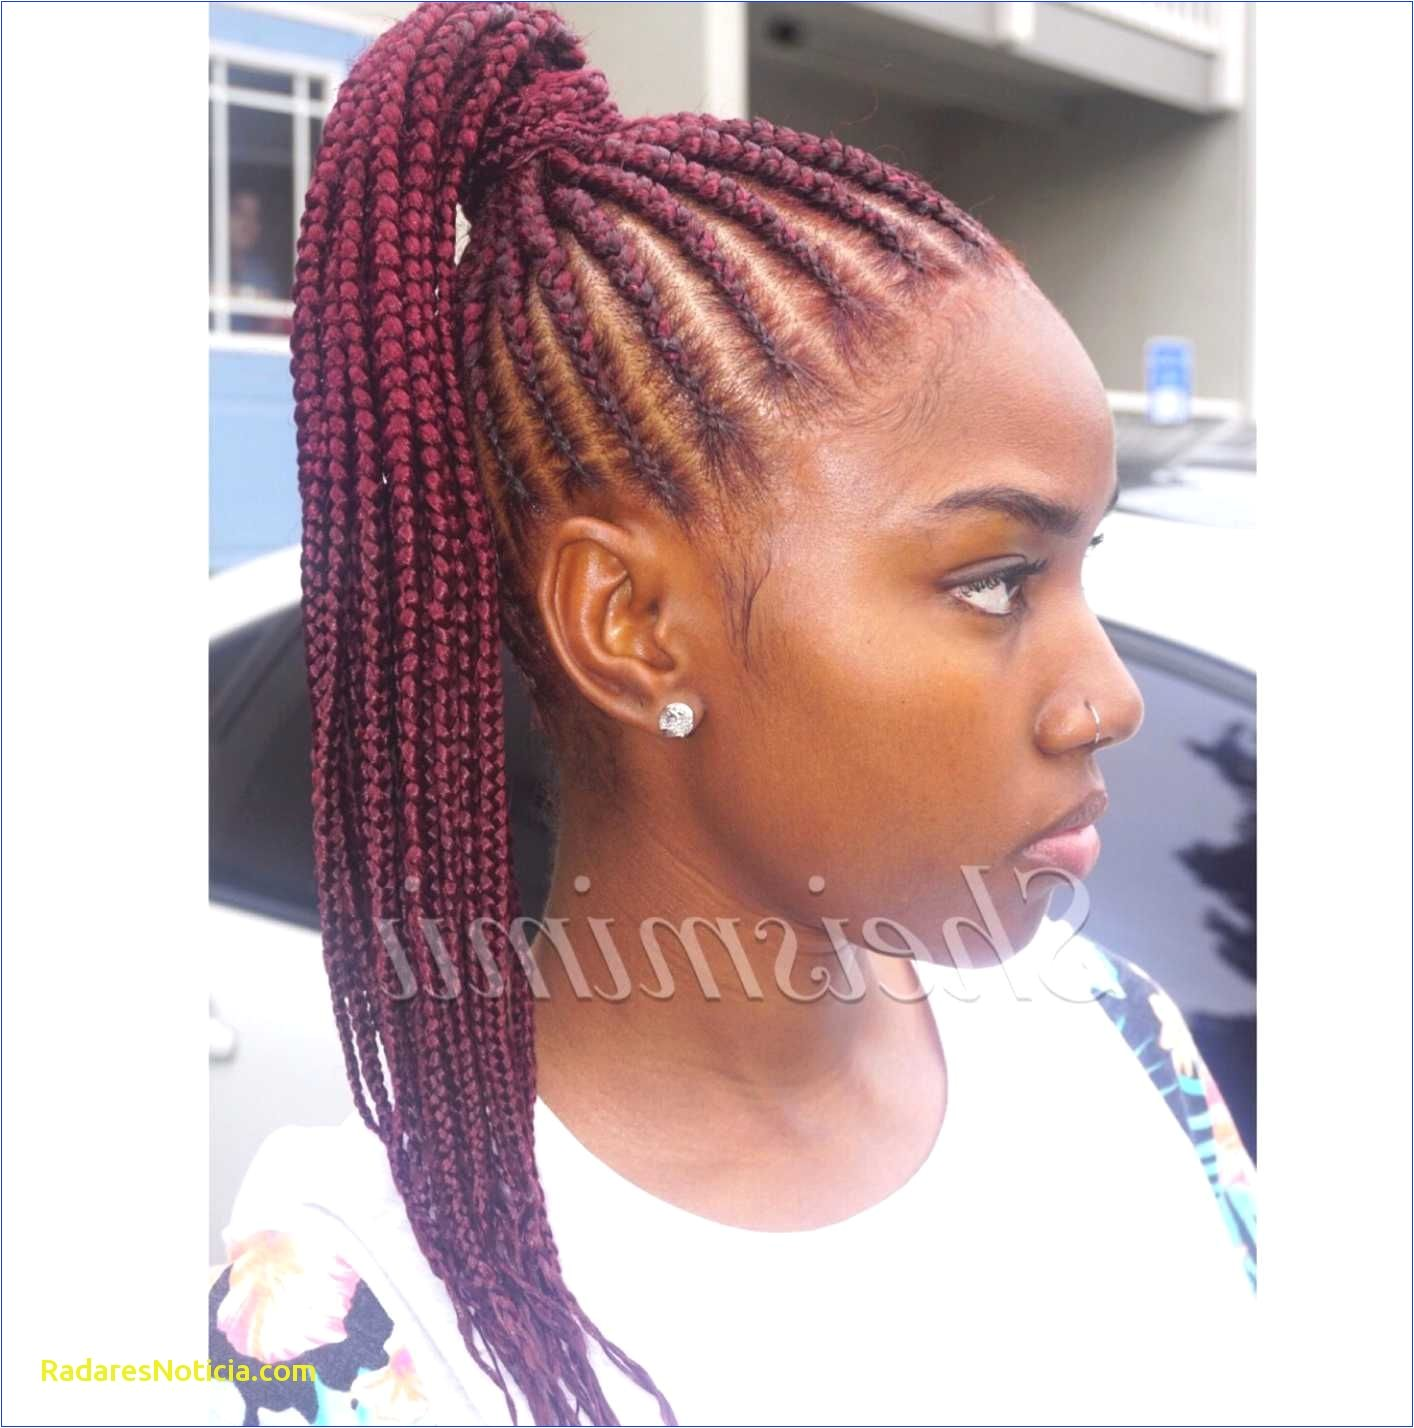 Braided Hairstyles for African American 10 Best Braided Ponytail Hairstyles